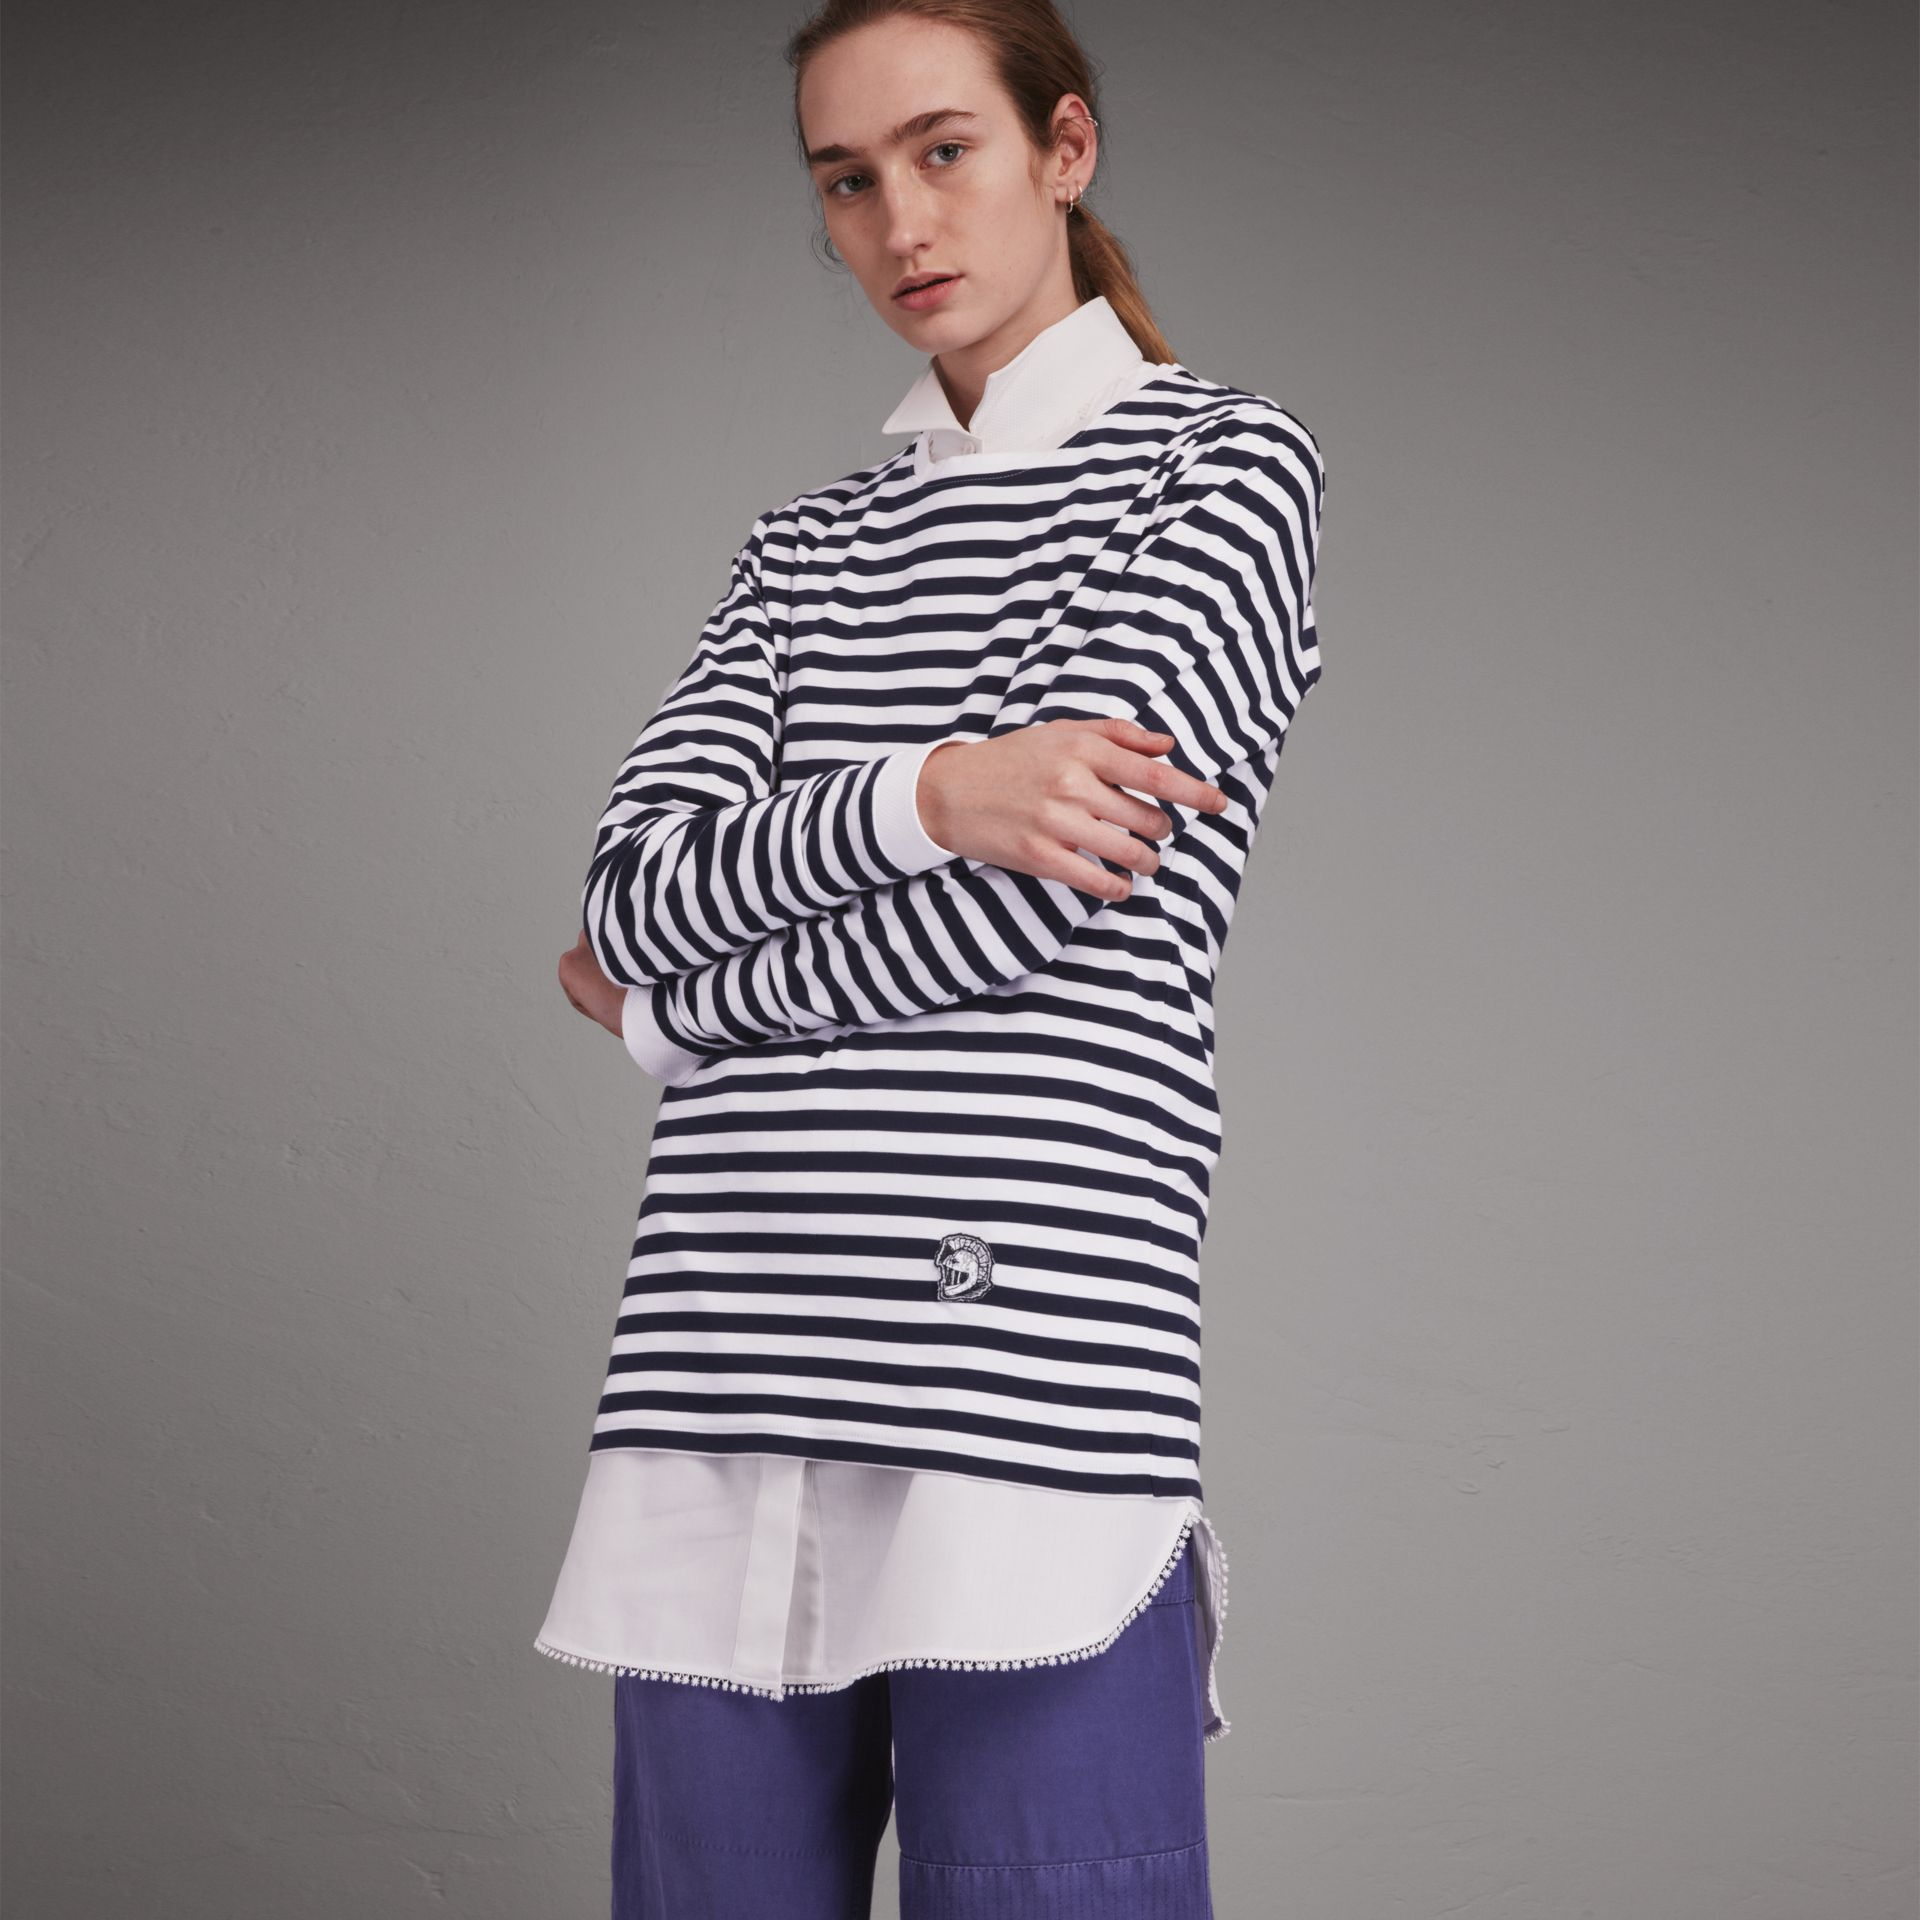 Unisex Pallas Helmet Motif Breton Stripe Cotton Top in Indigo - Men | Burberry - gallery image 3